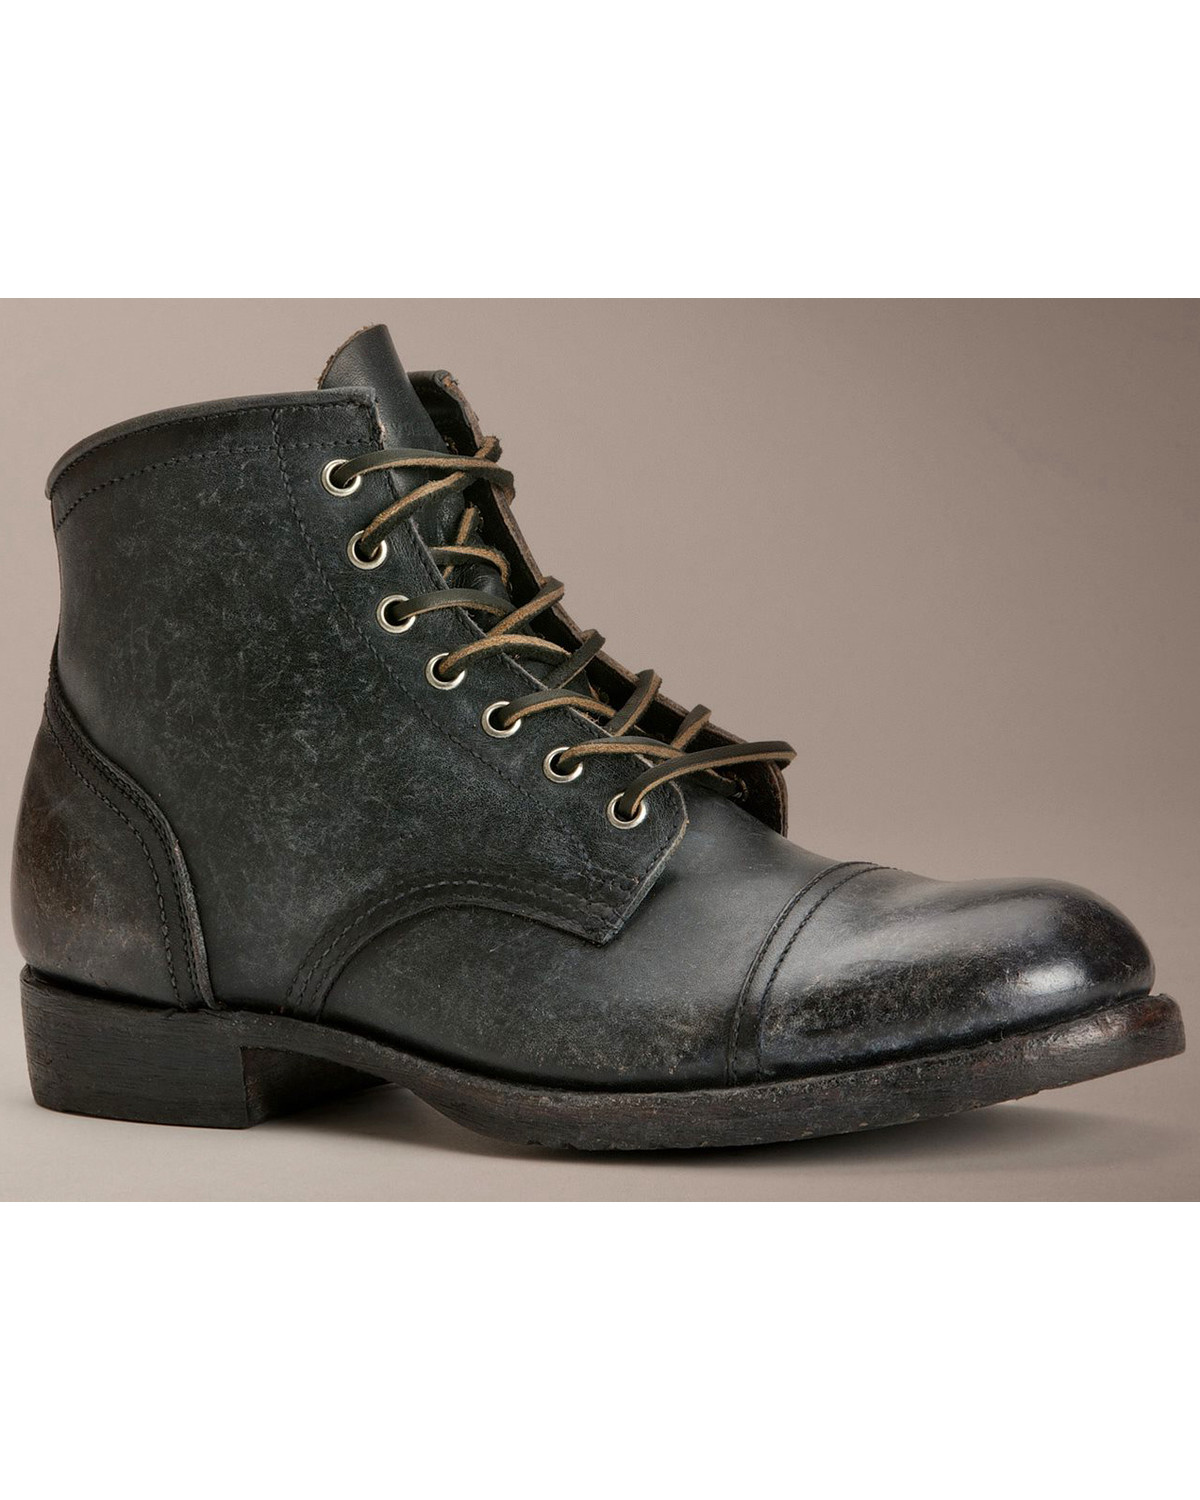 united kingdom new lifestyle new product Frye Logan Cap Toe Lace-Up Boots | Boot Barn